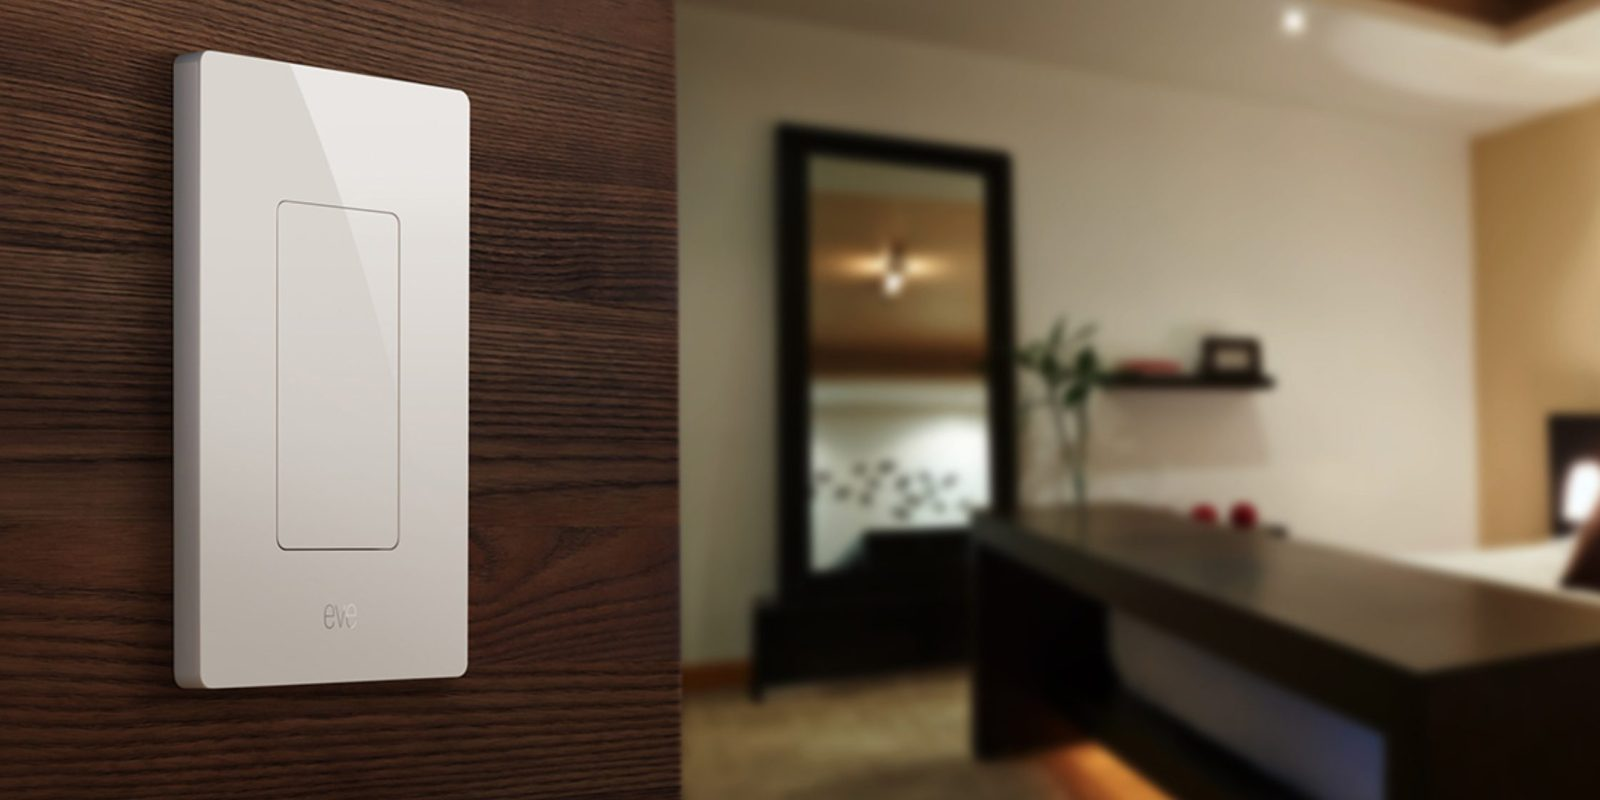 Elgato says updates are coming to its HomeKit products w/ support